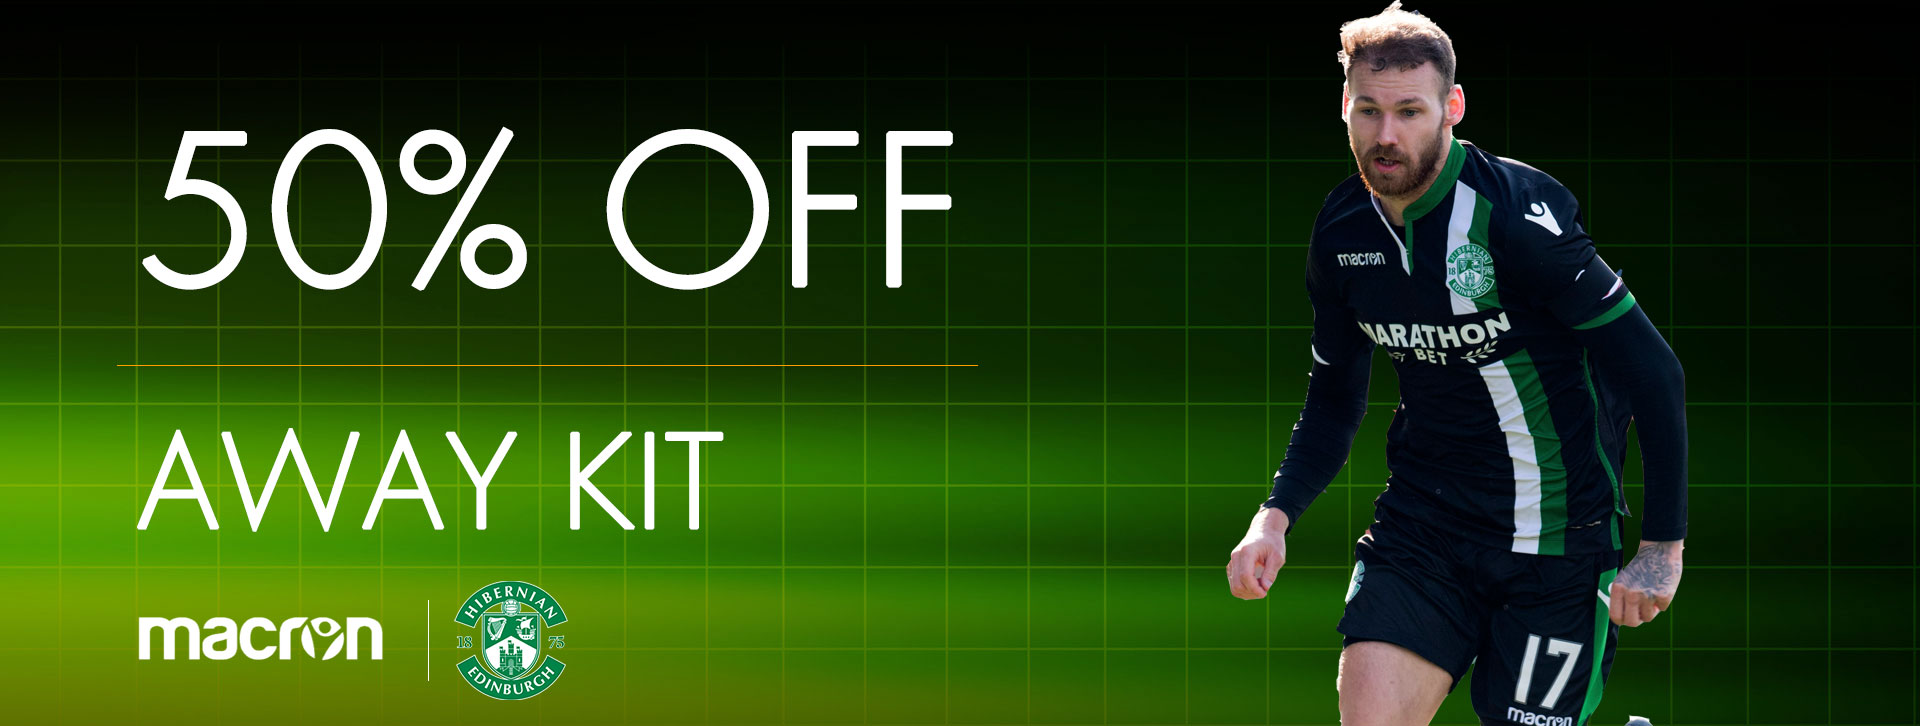 50% OFF AWAY KIT 2017/18